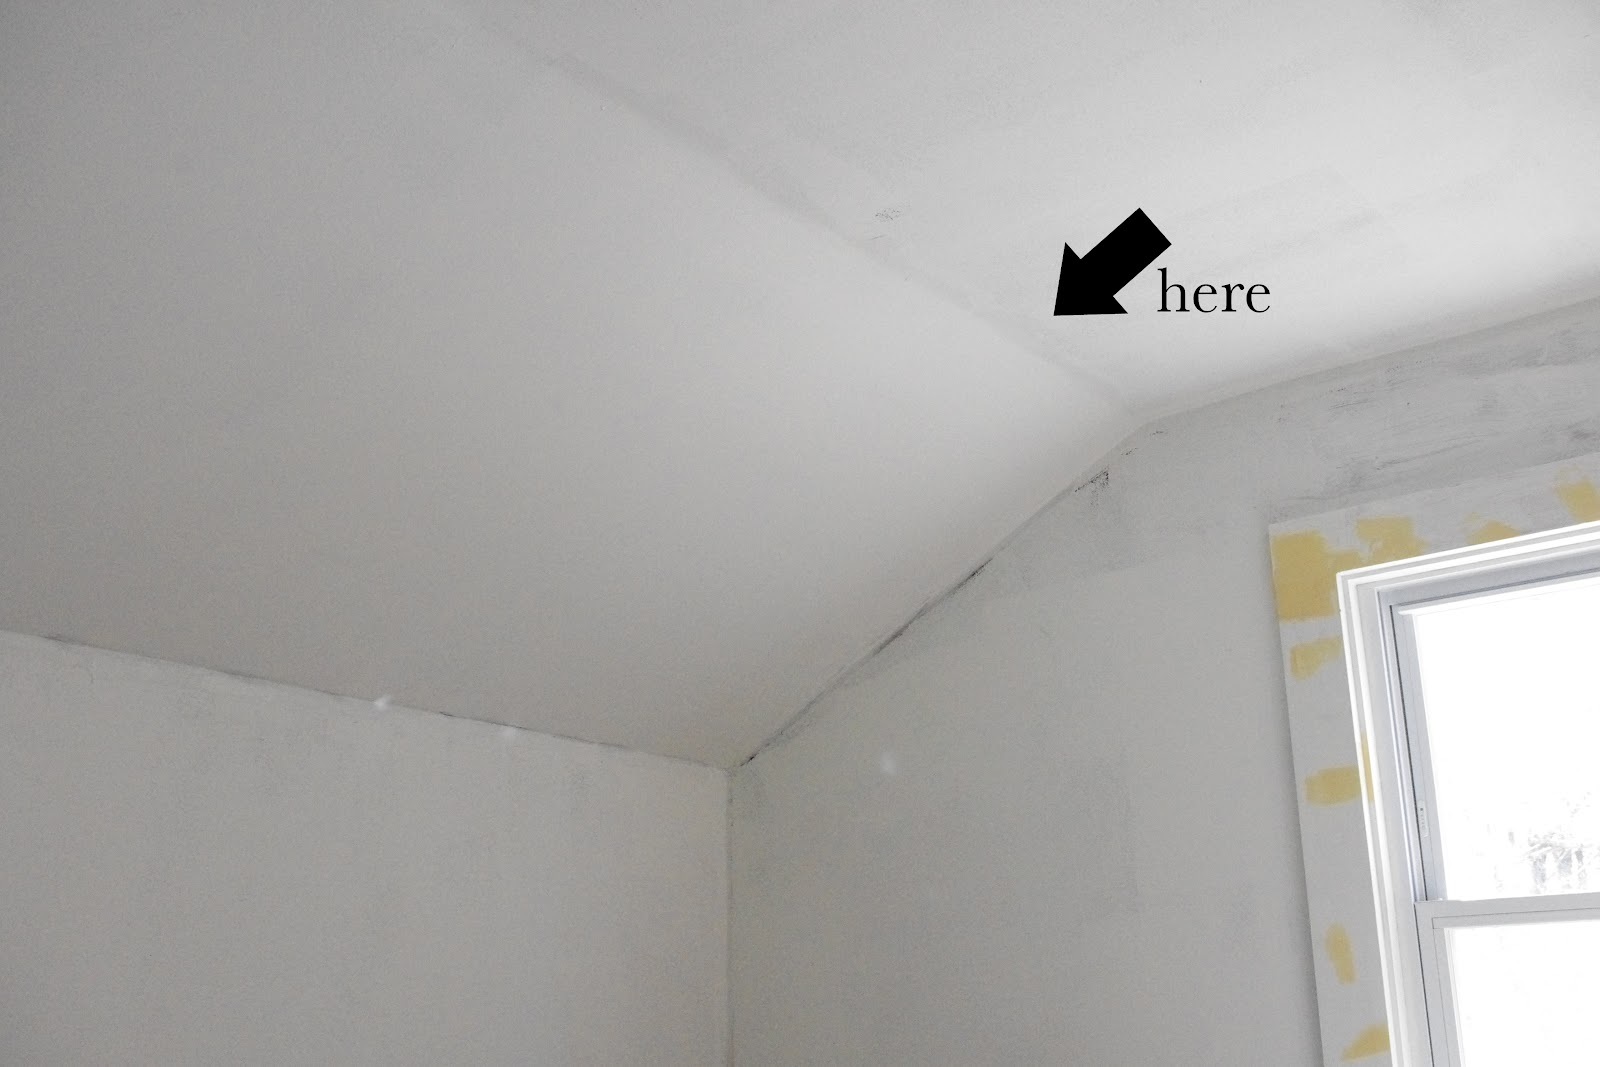 Unique ideas for painting bedroom tray ceilings images for Painting ceiling same as walls